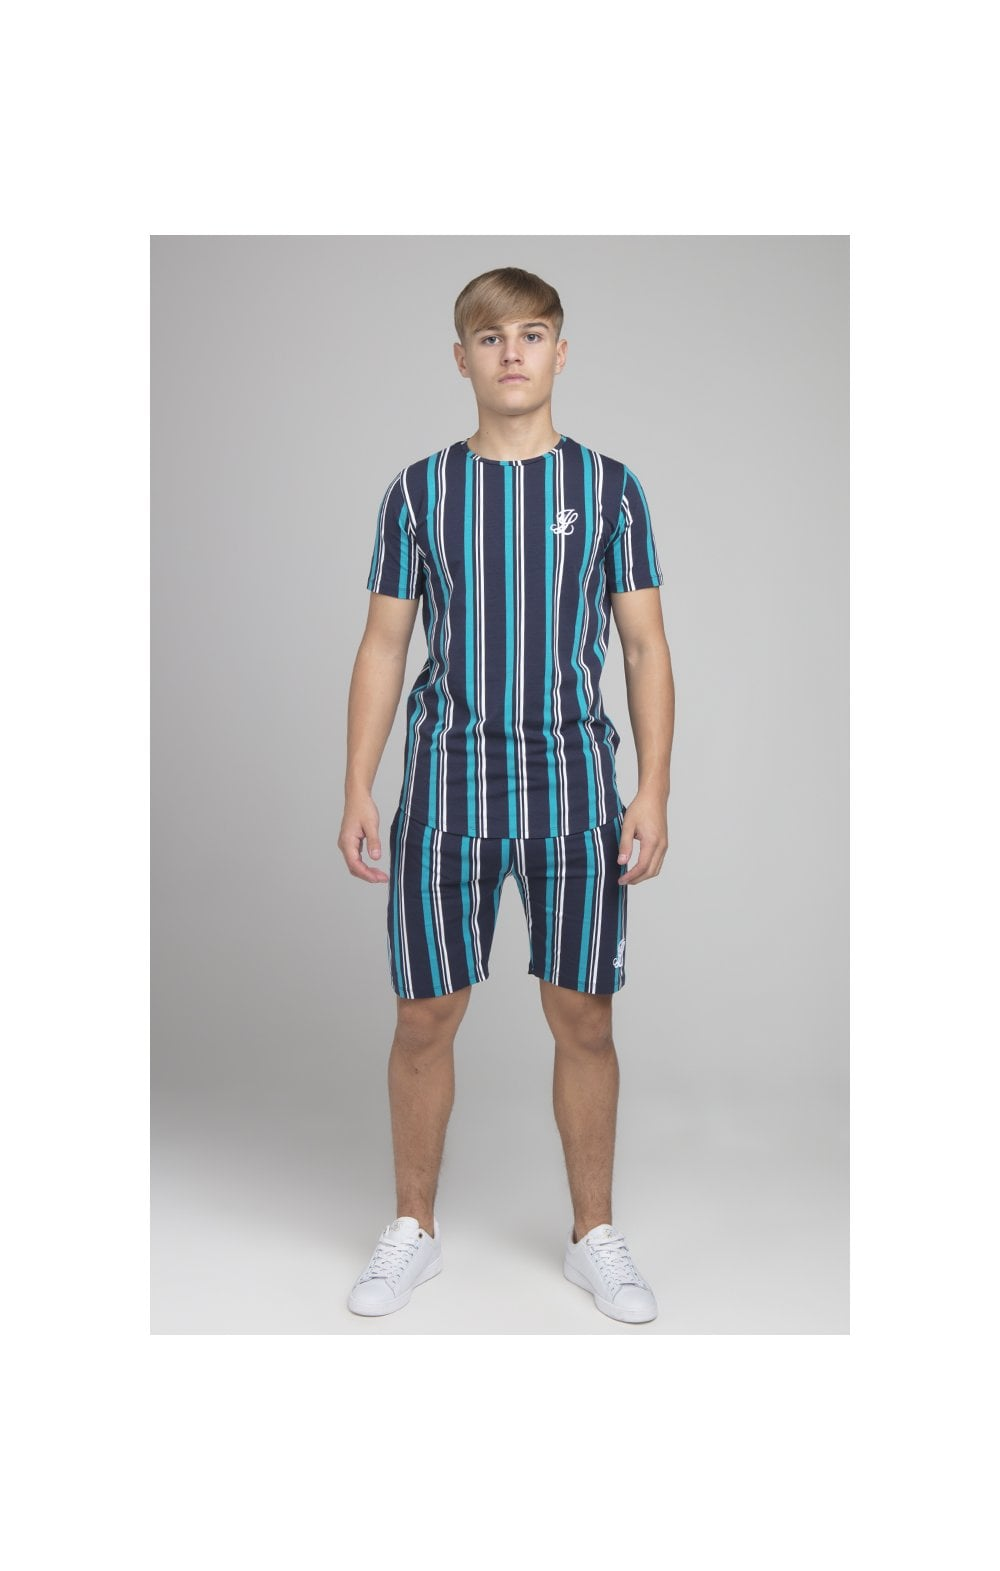 Load image into Gallery viewer, Illusive London Stripe Tee - Navy & Teal (3)